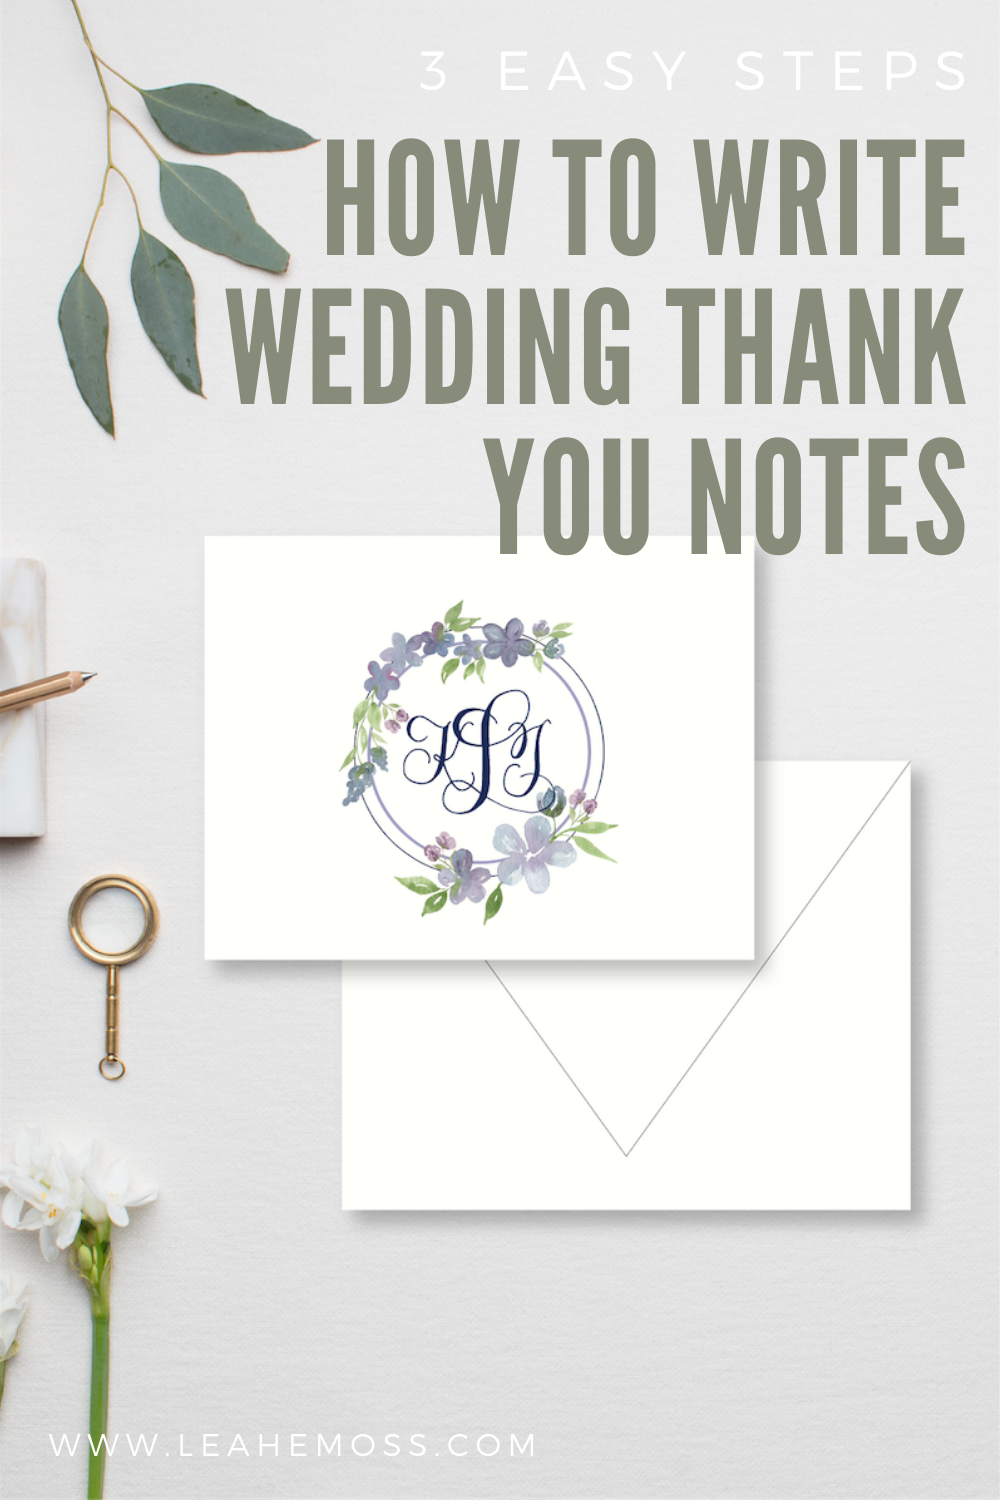 3 easy steps on how to write your wedding thank you notes - Leah E. Moss Designs